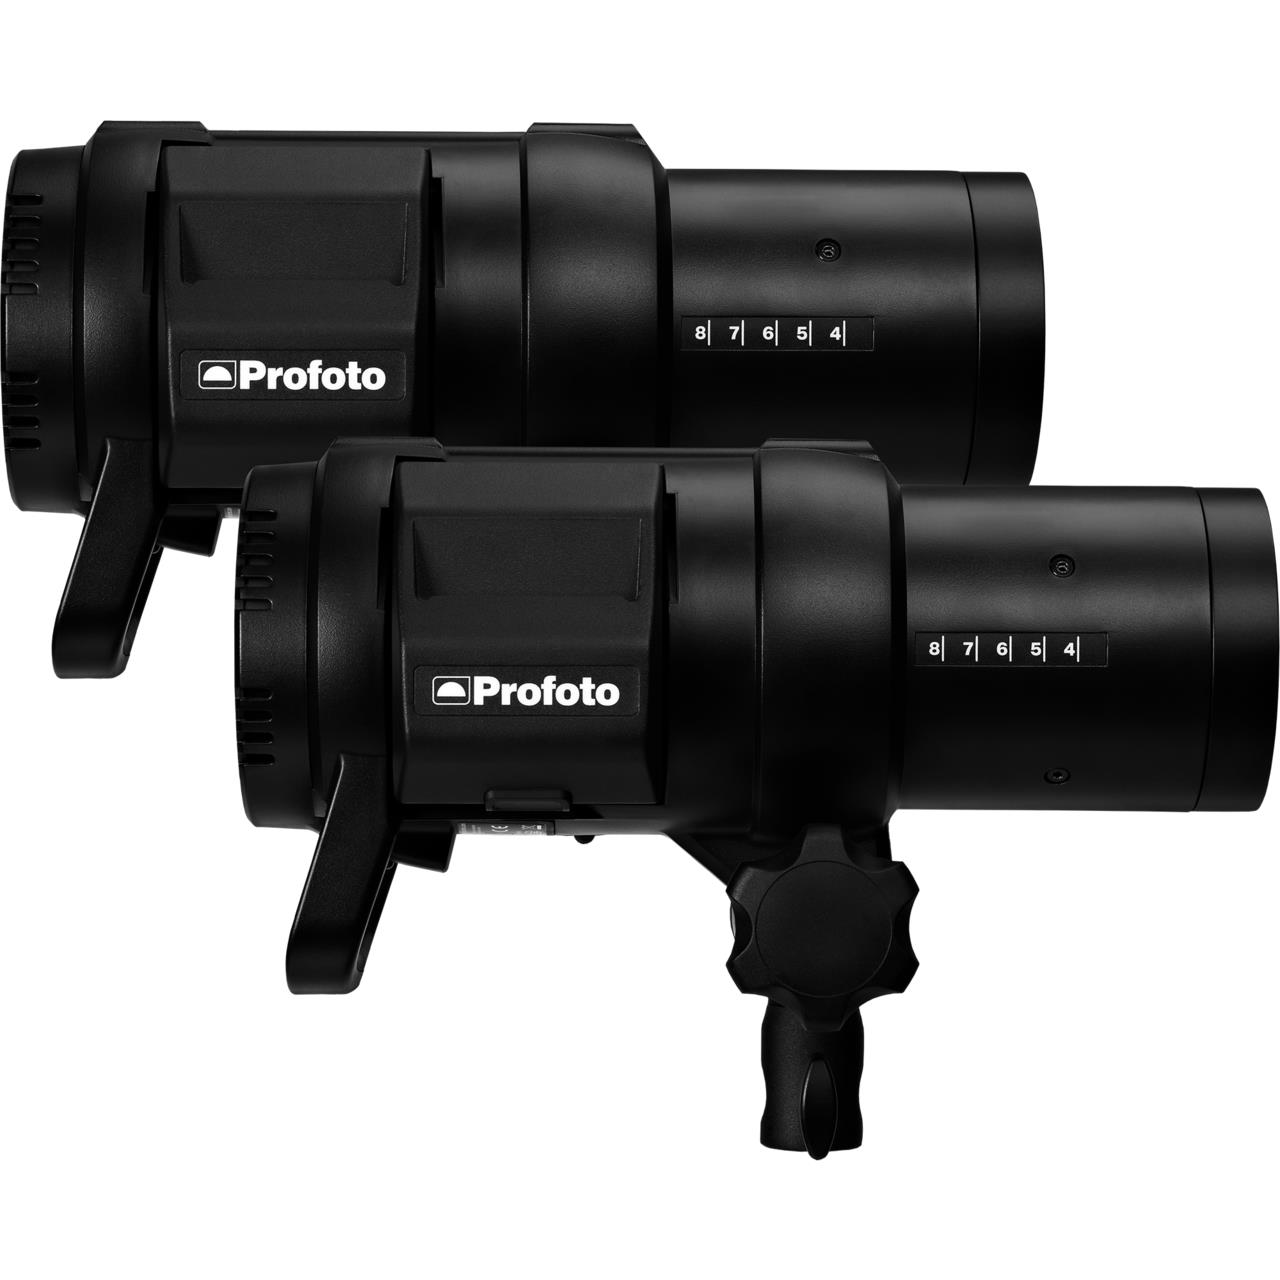 Profoto B1X Location Kit 500 AirTTL -901027 -( Double light)